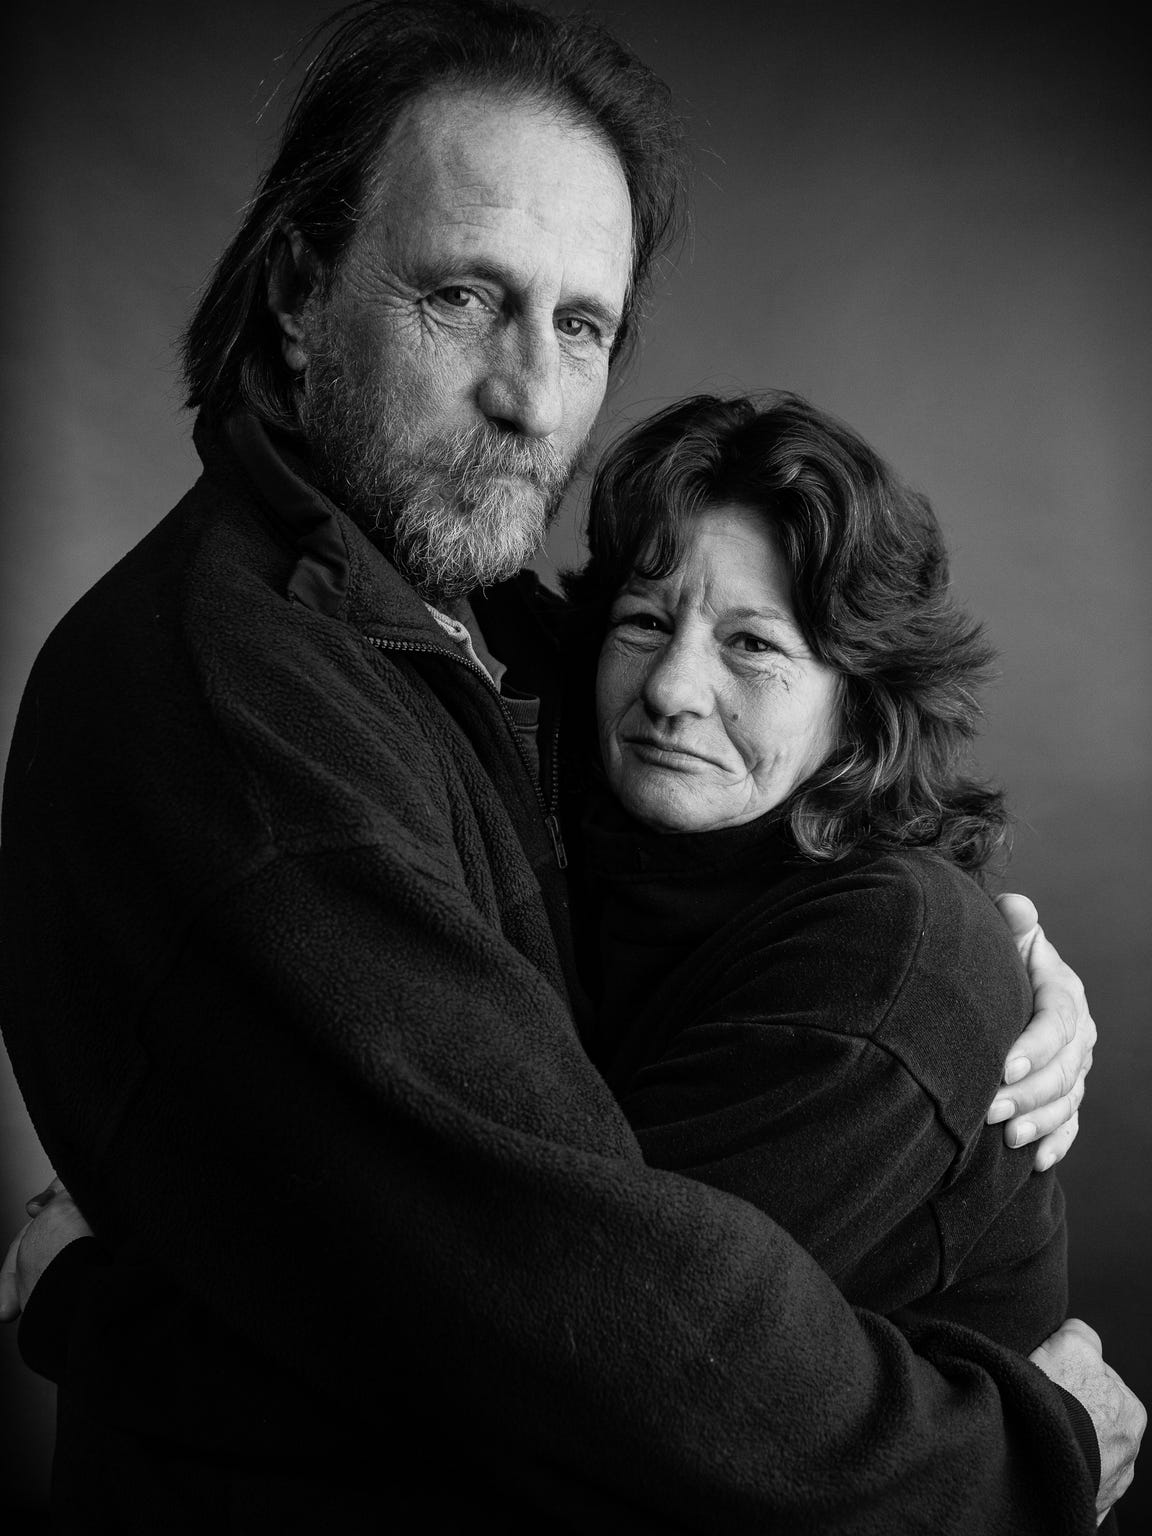 Photographer and filmmaker Randy Bacon took this photo of Kevin Drake and Petra Hensler a few years ago.